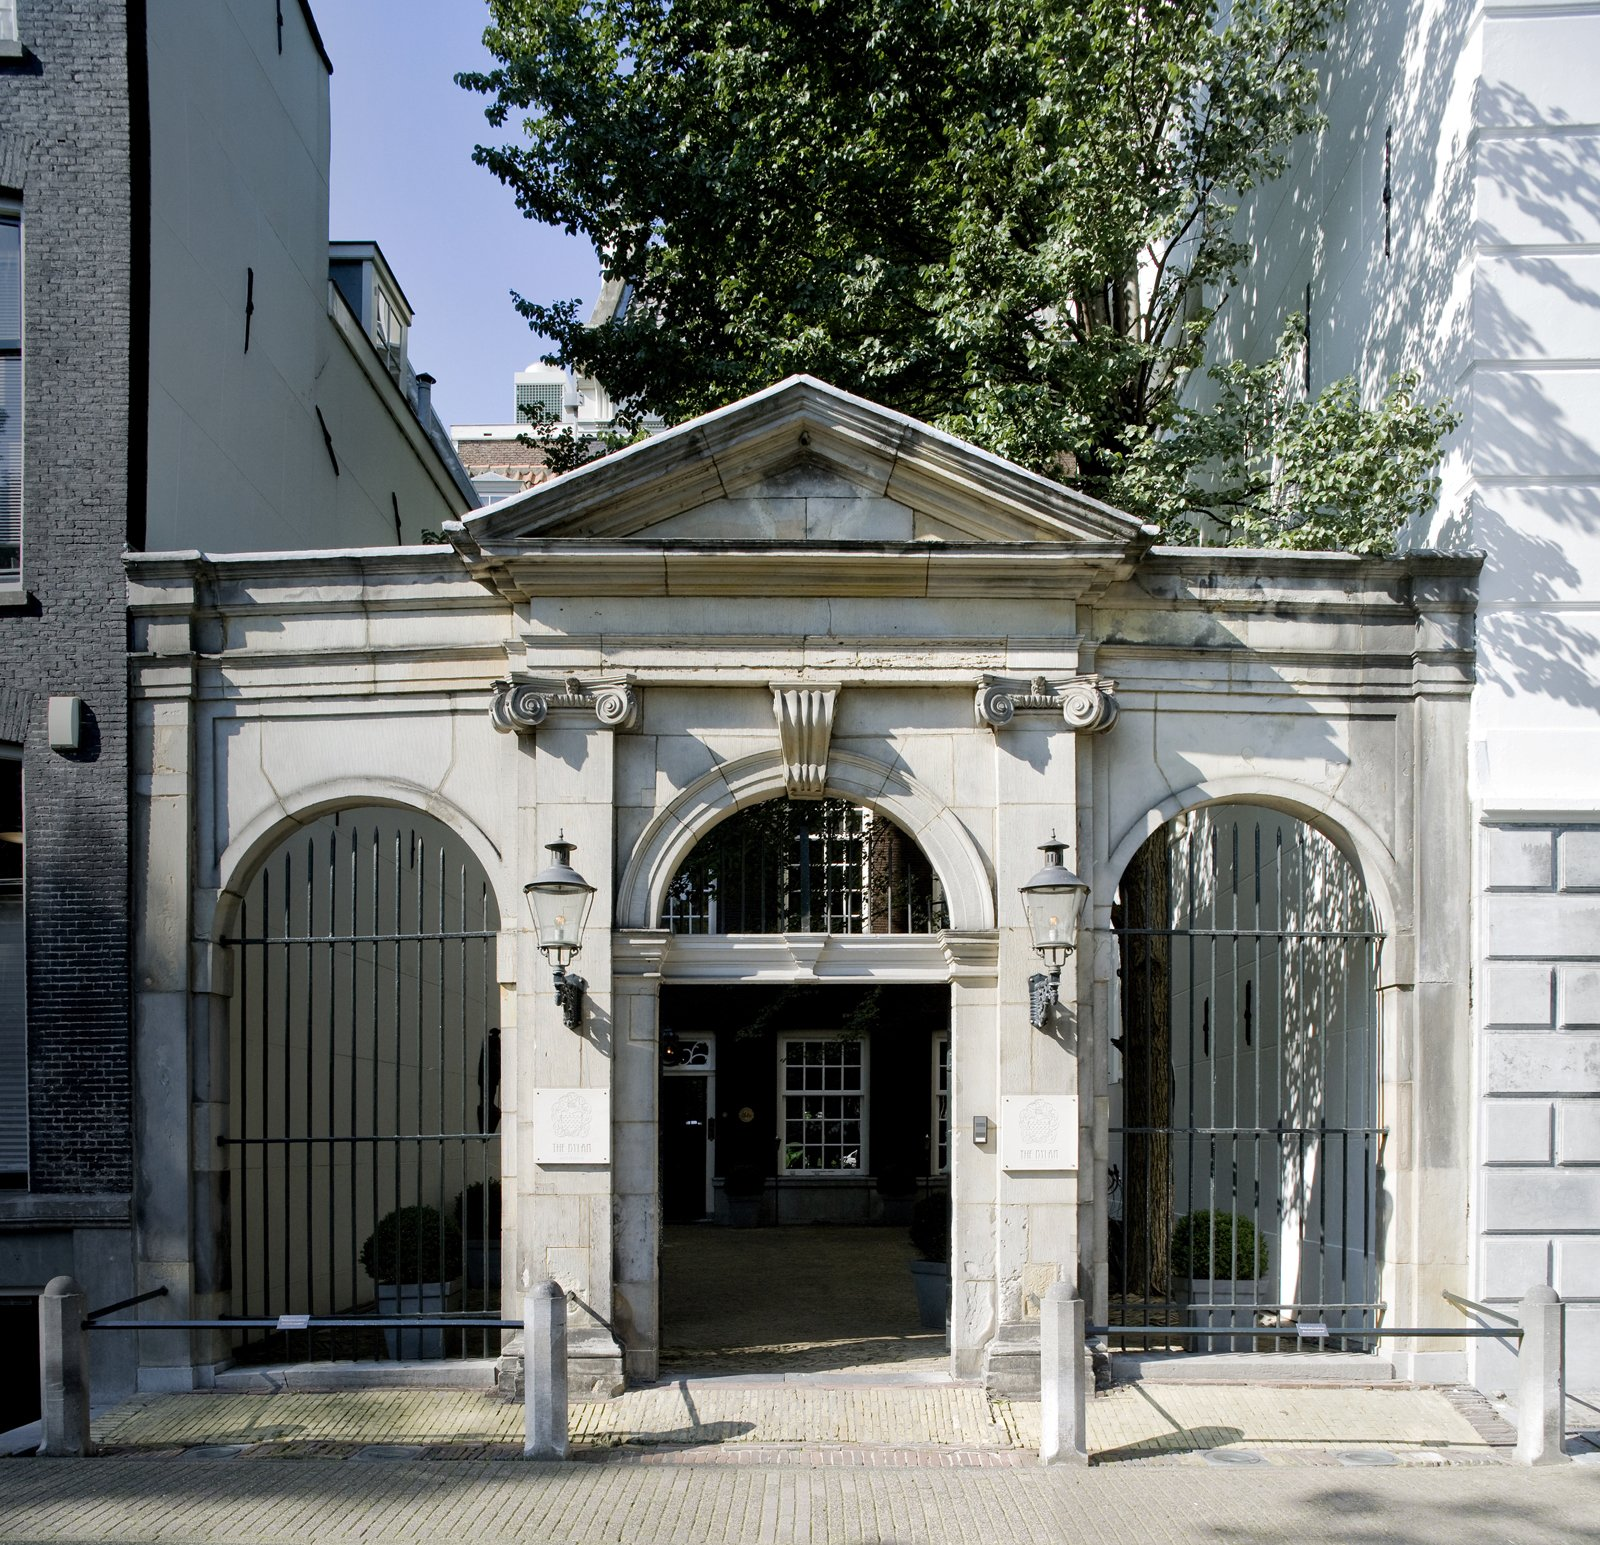 This is the hotel's front entrance, and the property's most historic architectural relic. A stone theater built in 1637 by the architect Jacob van Campen once stood here. It was a famous theater, visited by celebrities and crowned heads of that era. In 1737, Vivaldi conducted a concert there for the theater's 100-year anniversary. But the place burned down in 1772 during a performance by a Flemish operetta company. A tin full of candle wax caught fire and set the side-scenes alight. Only the hotel's present-day doorway (pictured here) and the hall where the landlord lived, where guests now check in, were spared.  The Dylan, Amsterdam by Jaime Gillin